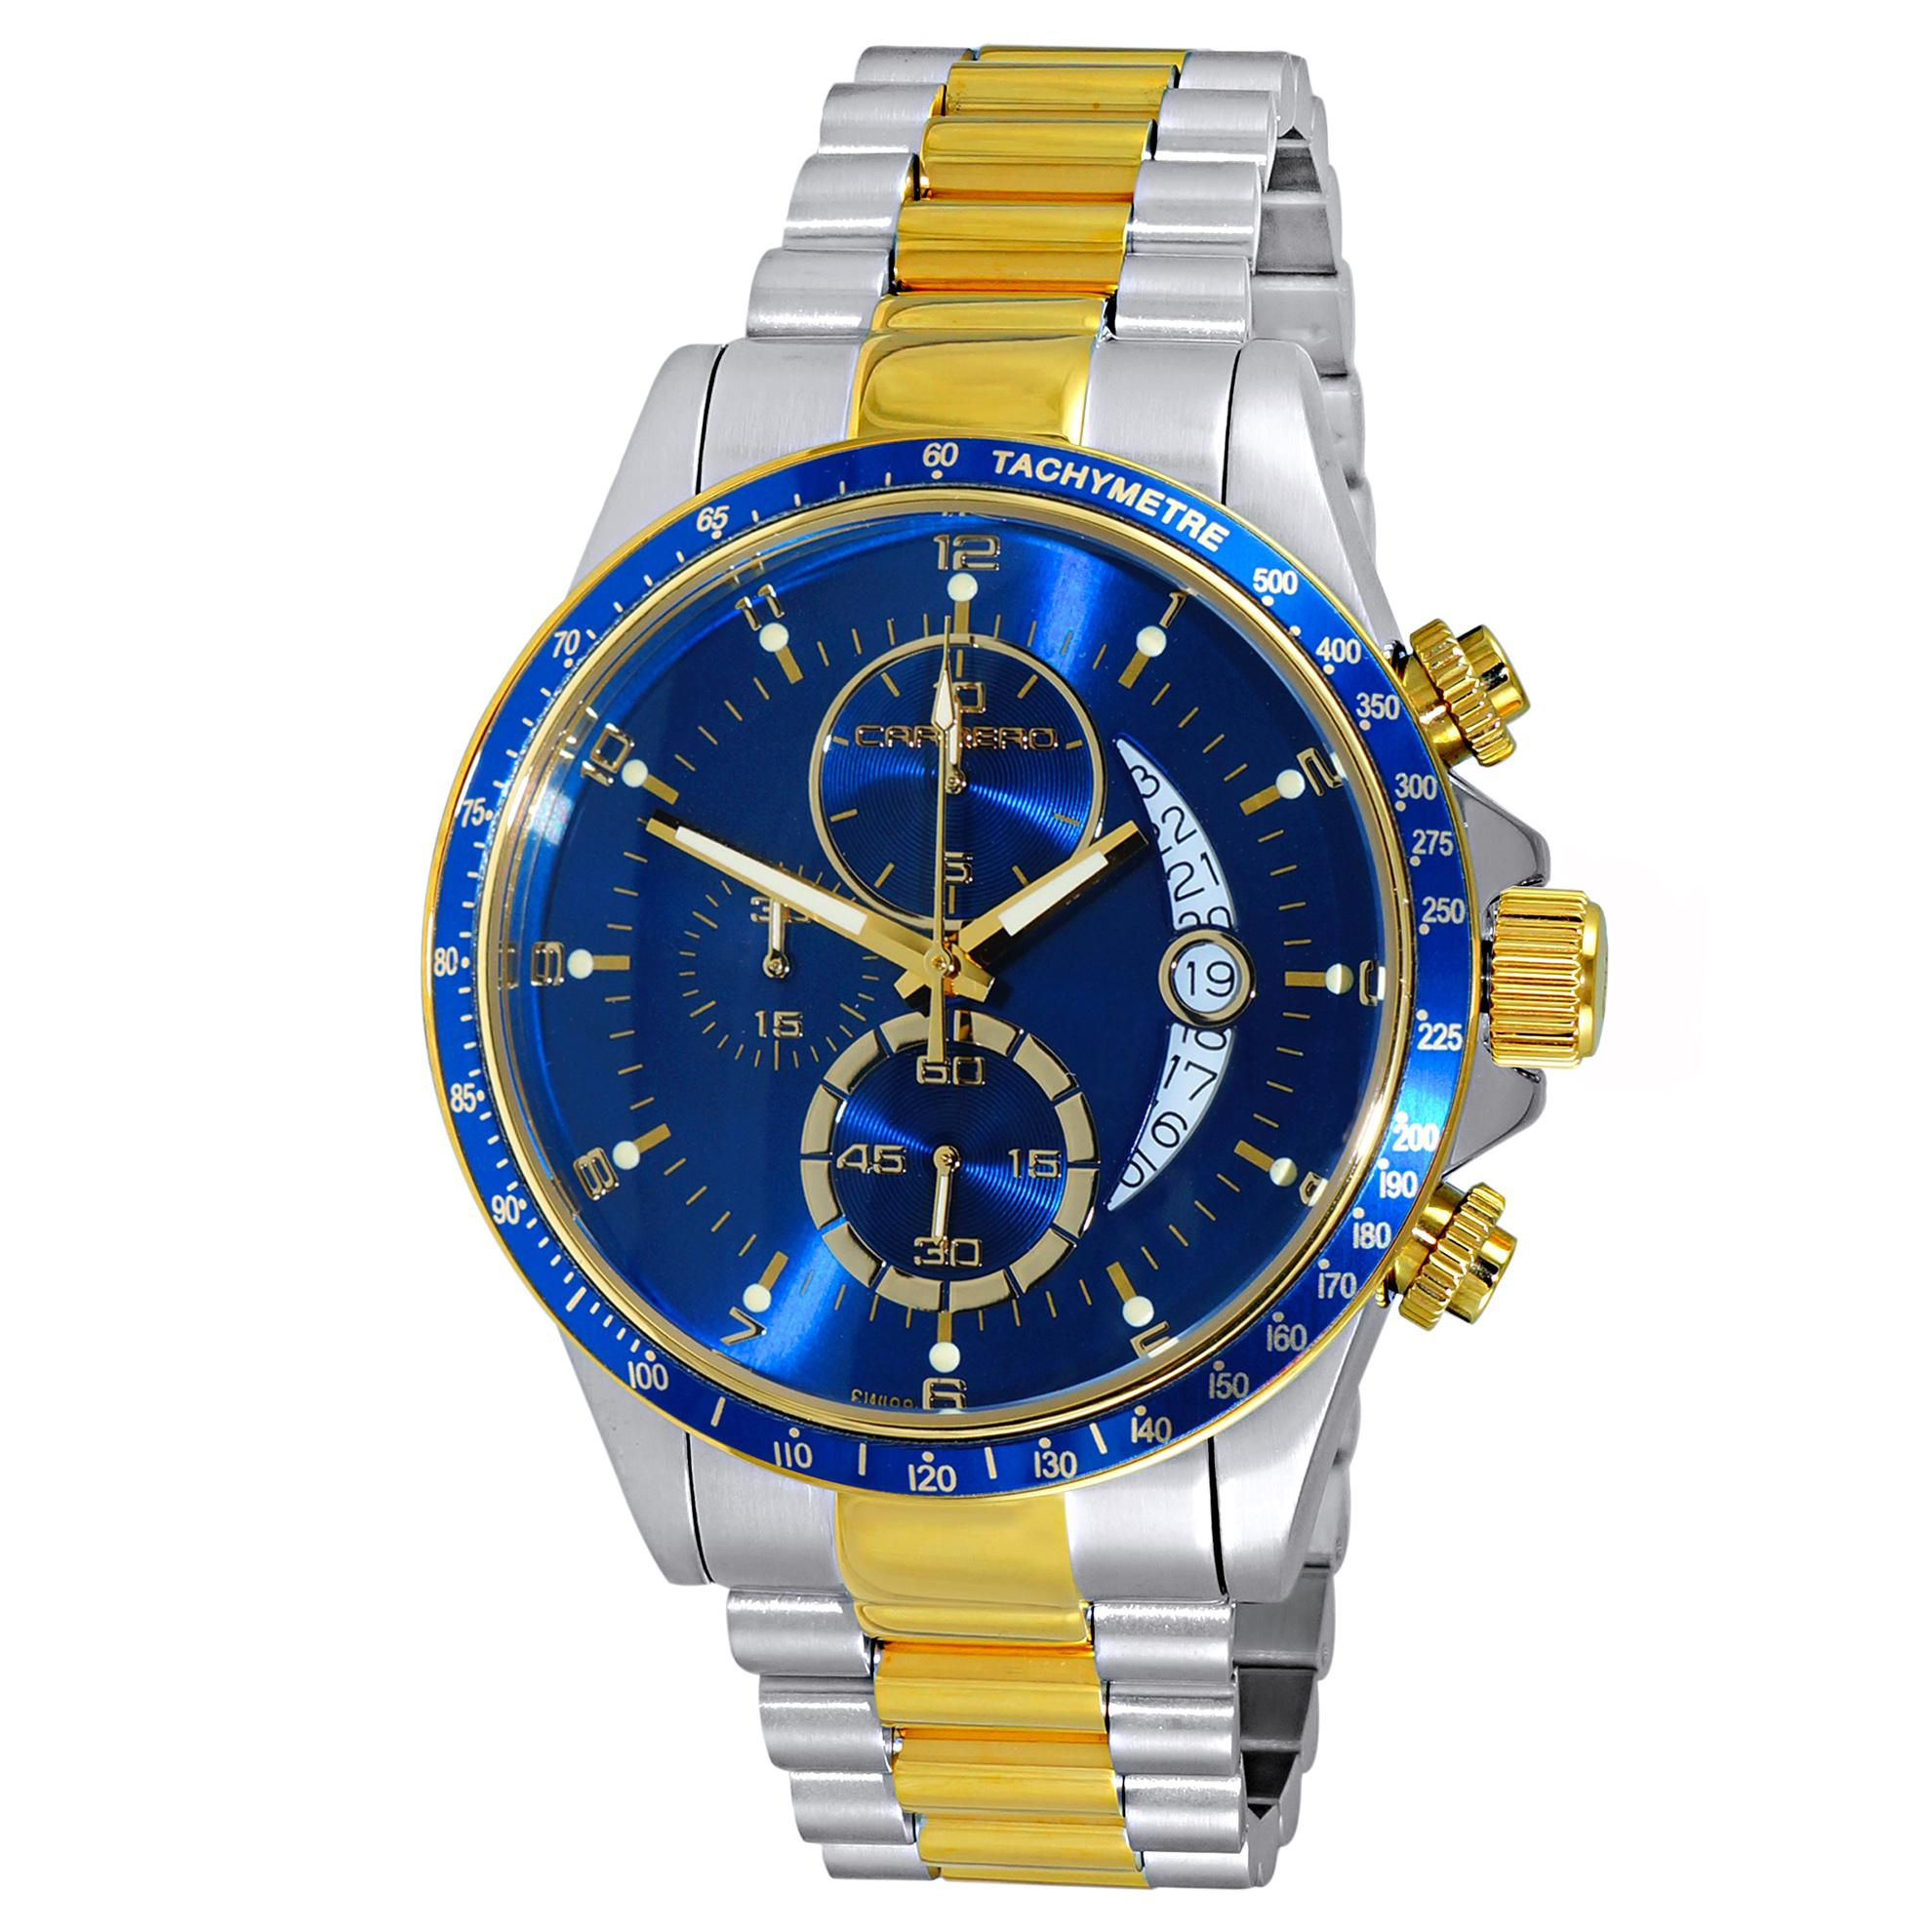 Carrero C2G111BU Carrero Catania R1 Limited Edition Swiss Chronograph Two-Tone Blue Dial